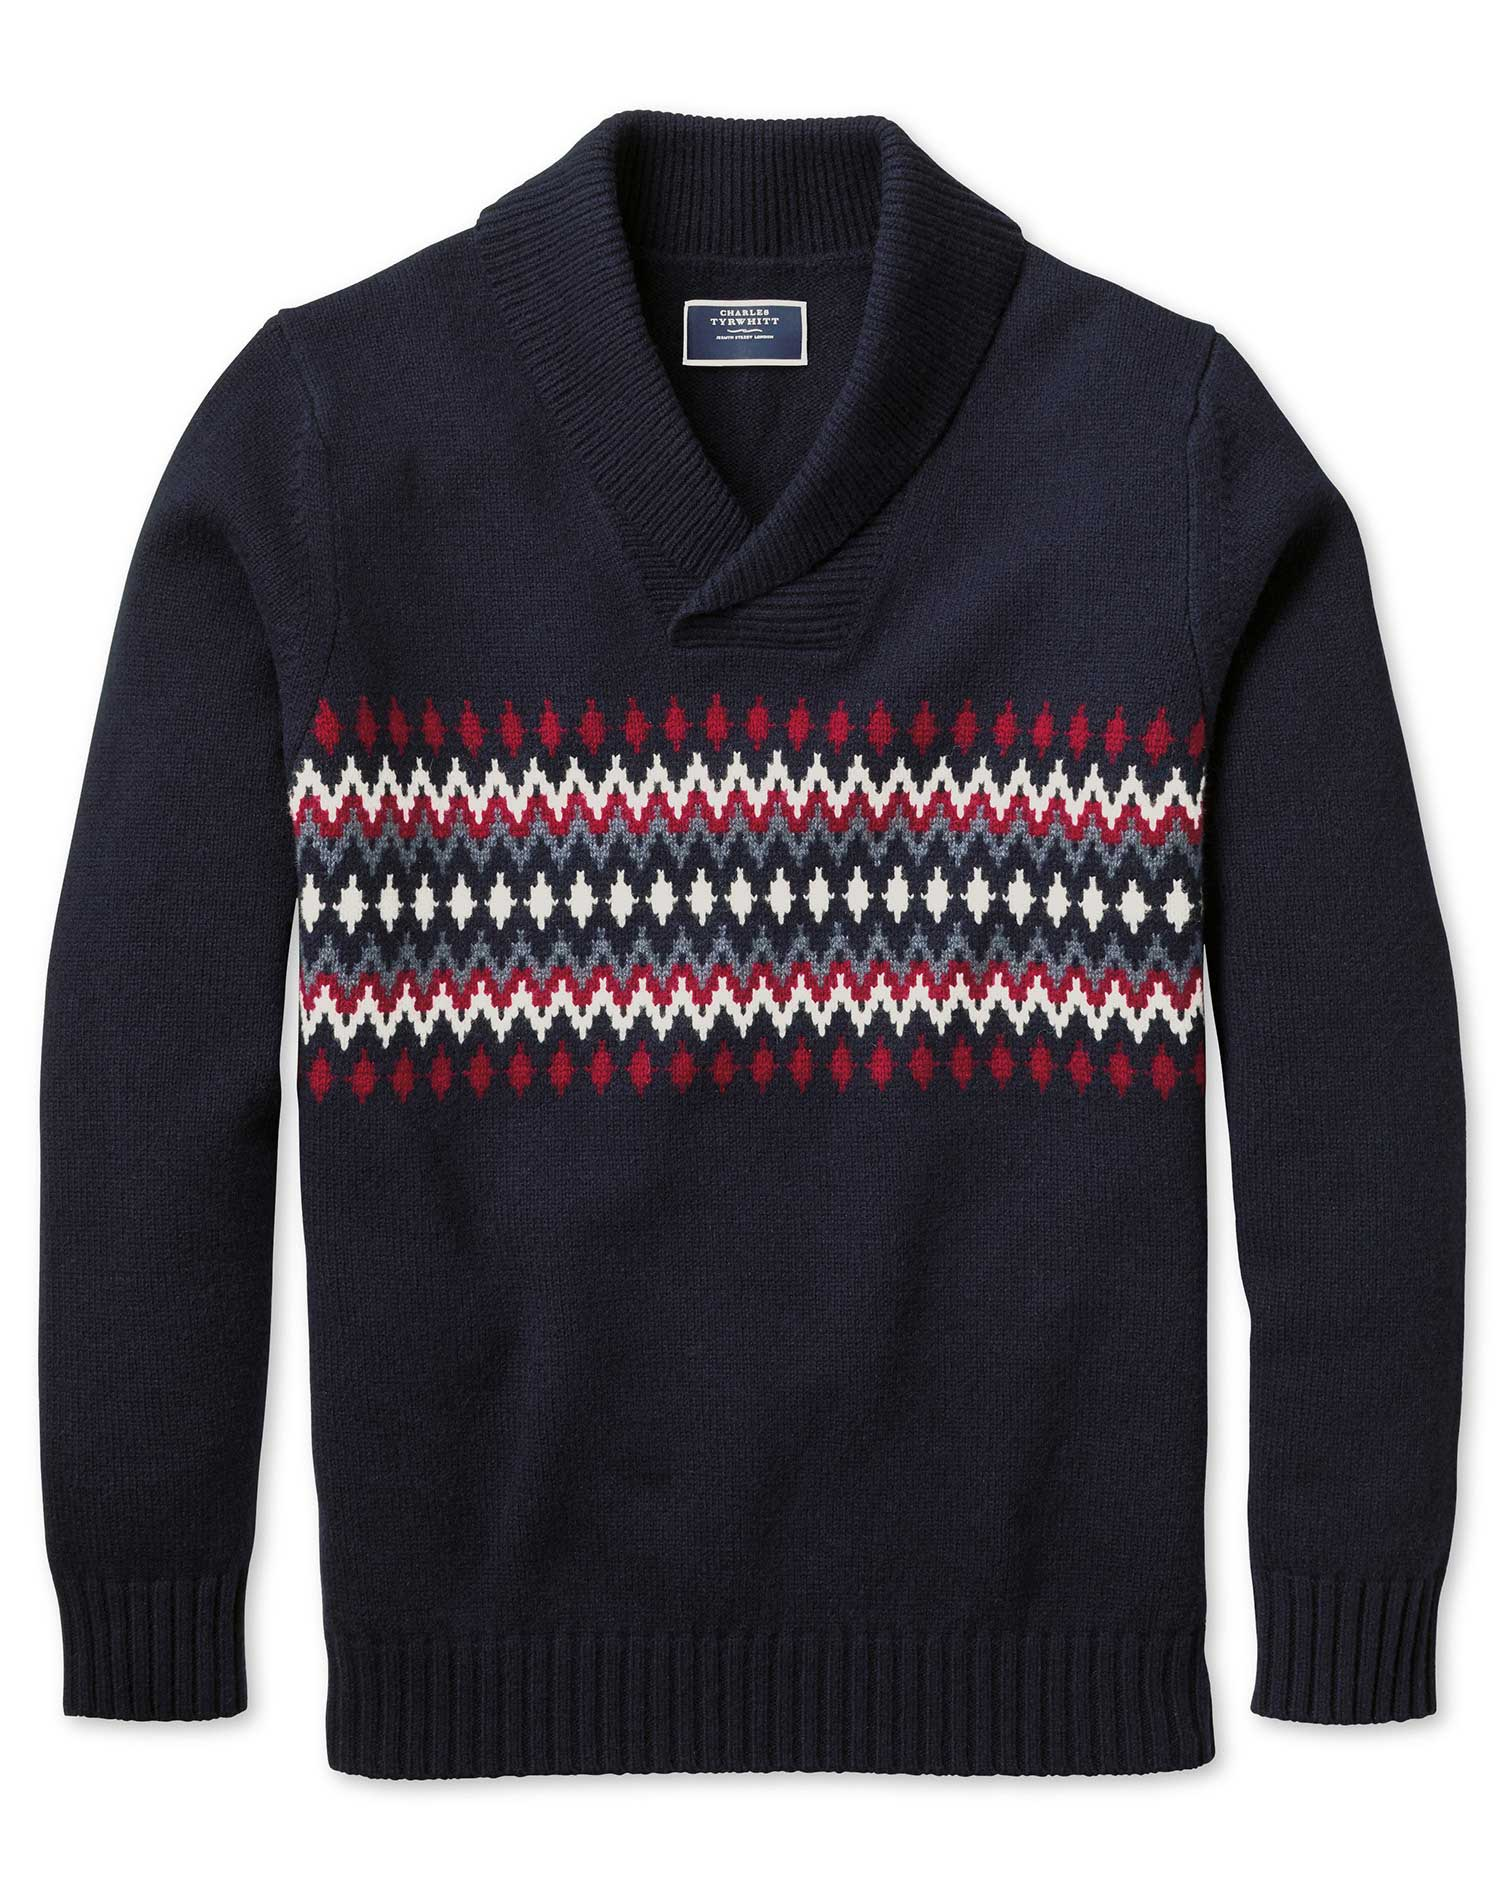 Navy and Red Shawl Collar Fair Isle Wool Jumper Size Small by Charles Tyrwhitt